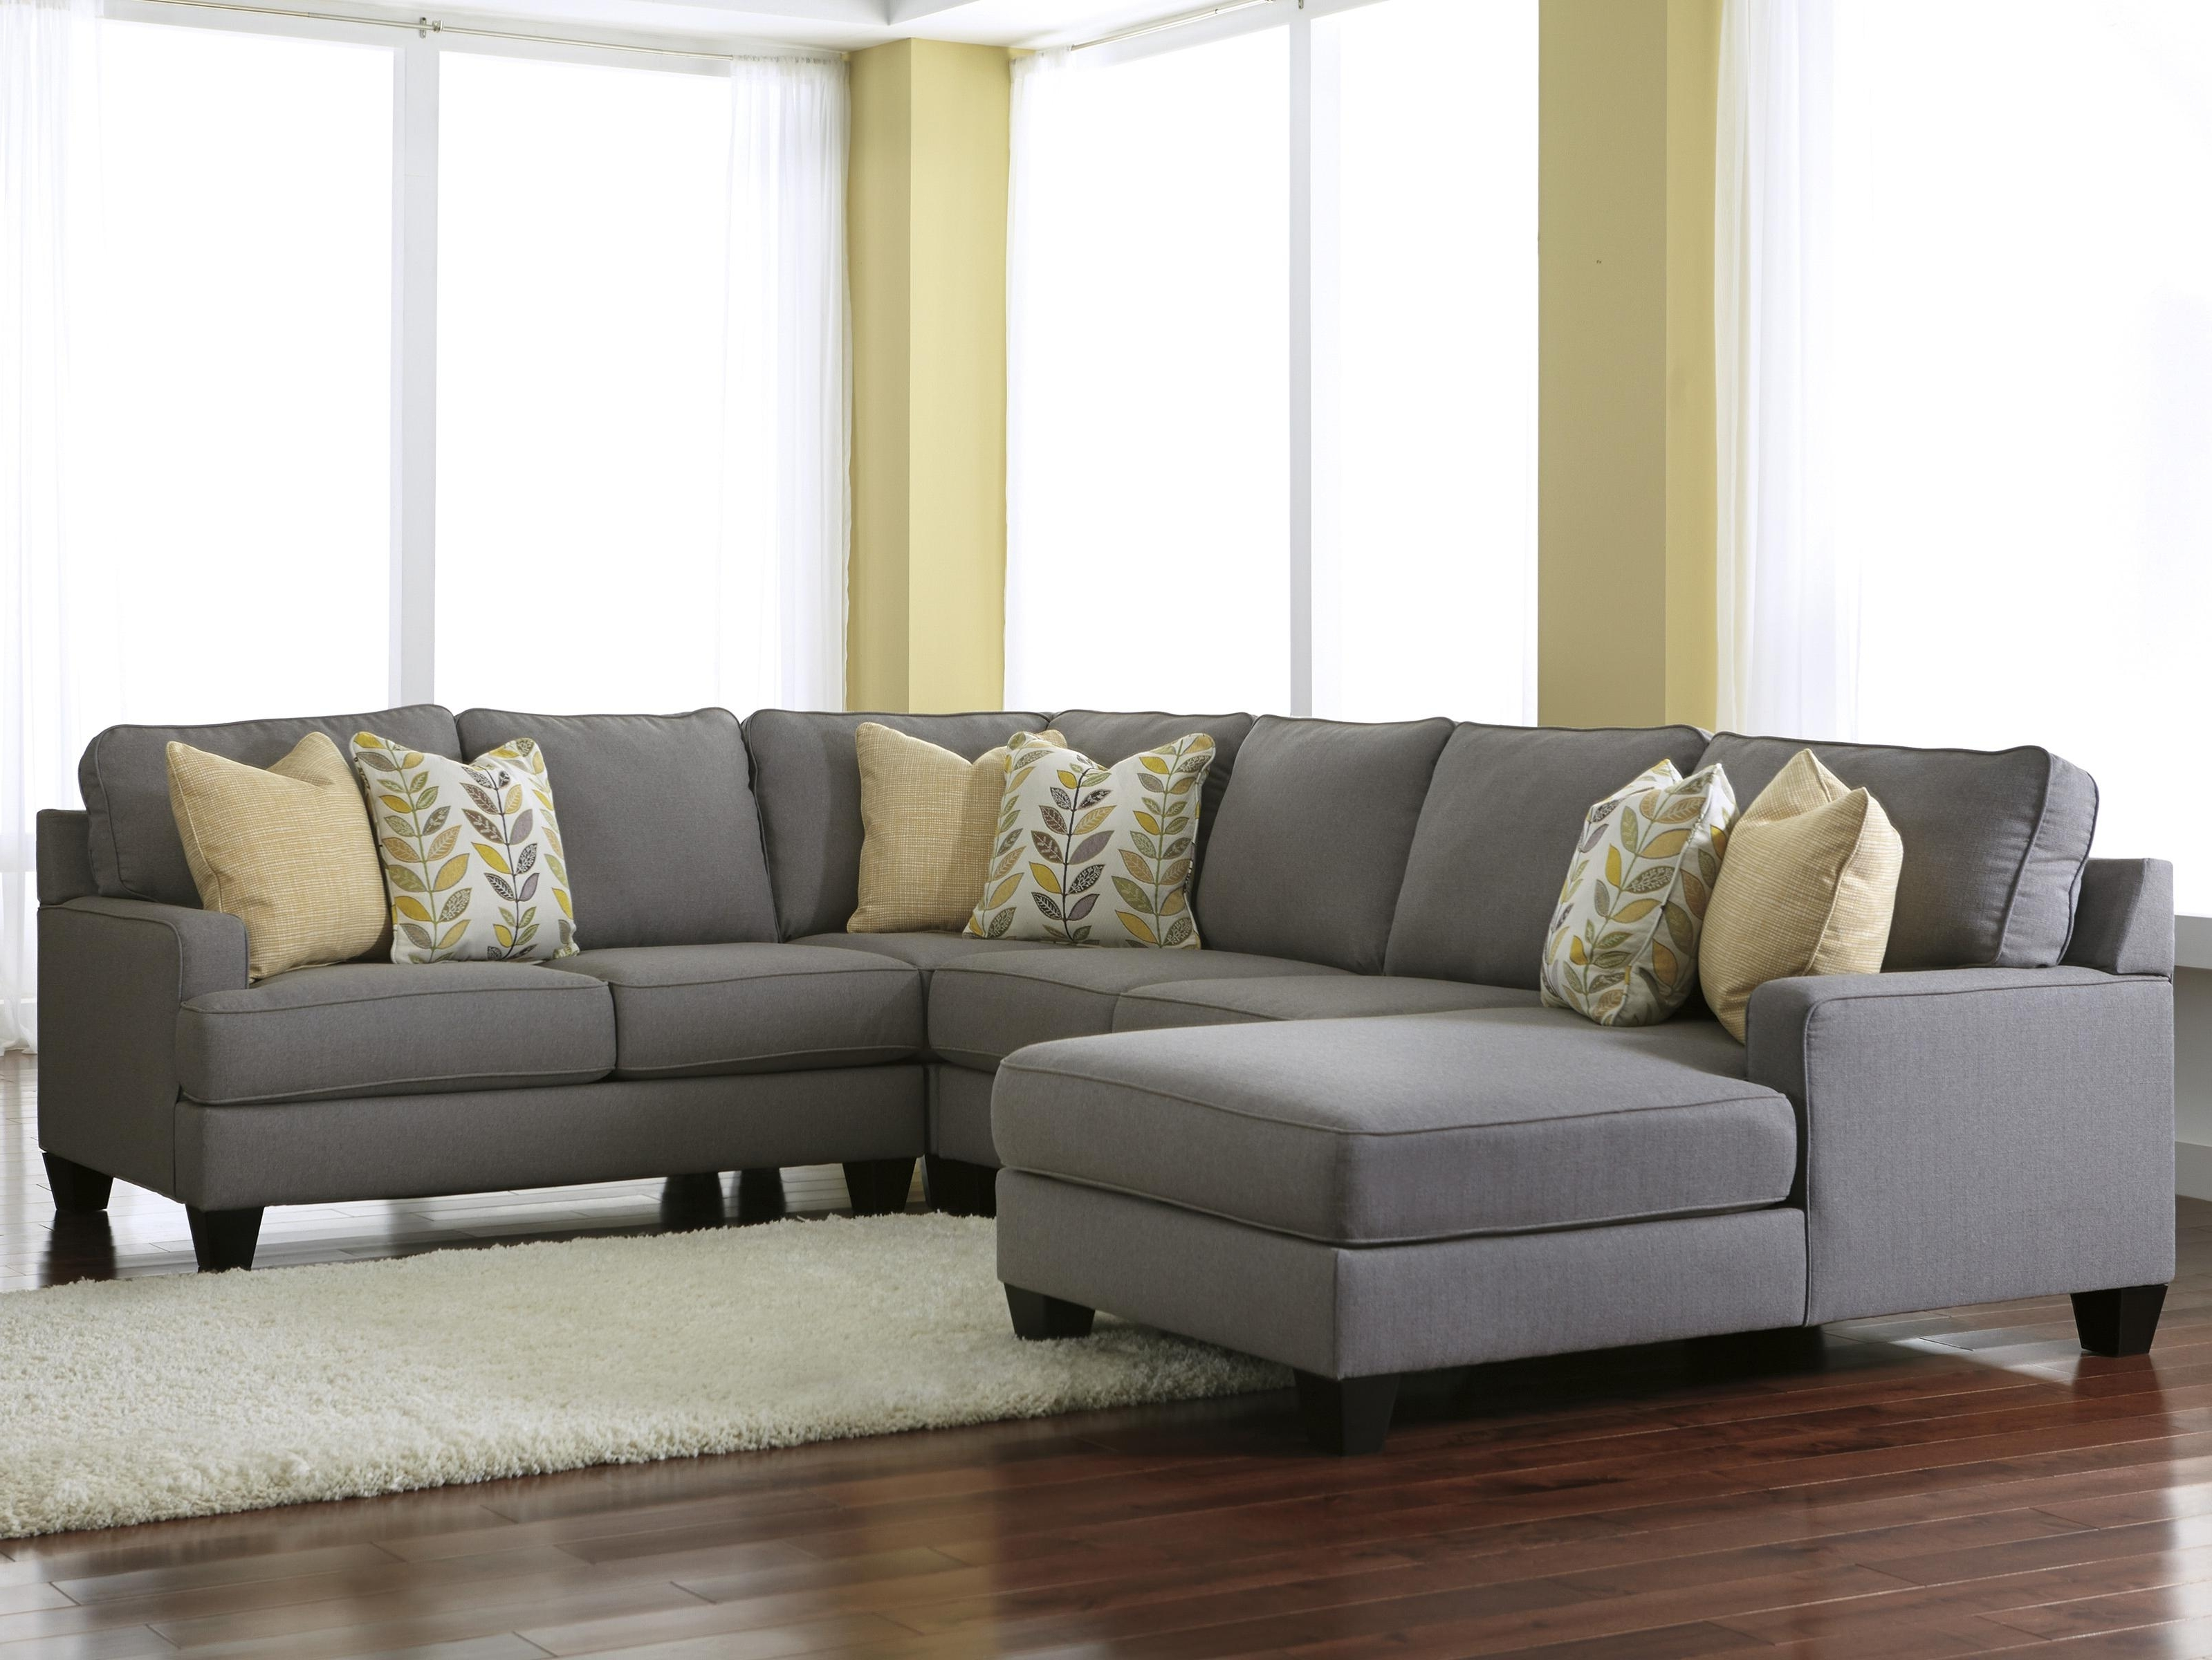 Sectional Sofas That Come In Pieces With Latest Modern 4 Piece Sectional Sofa With Left Chaise & Reversible Seat (View 11 of 20)